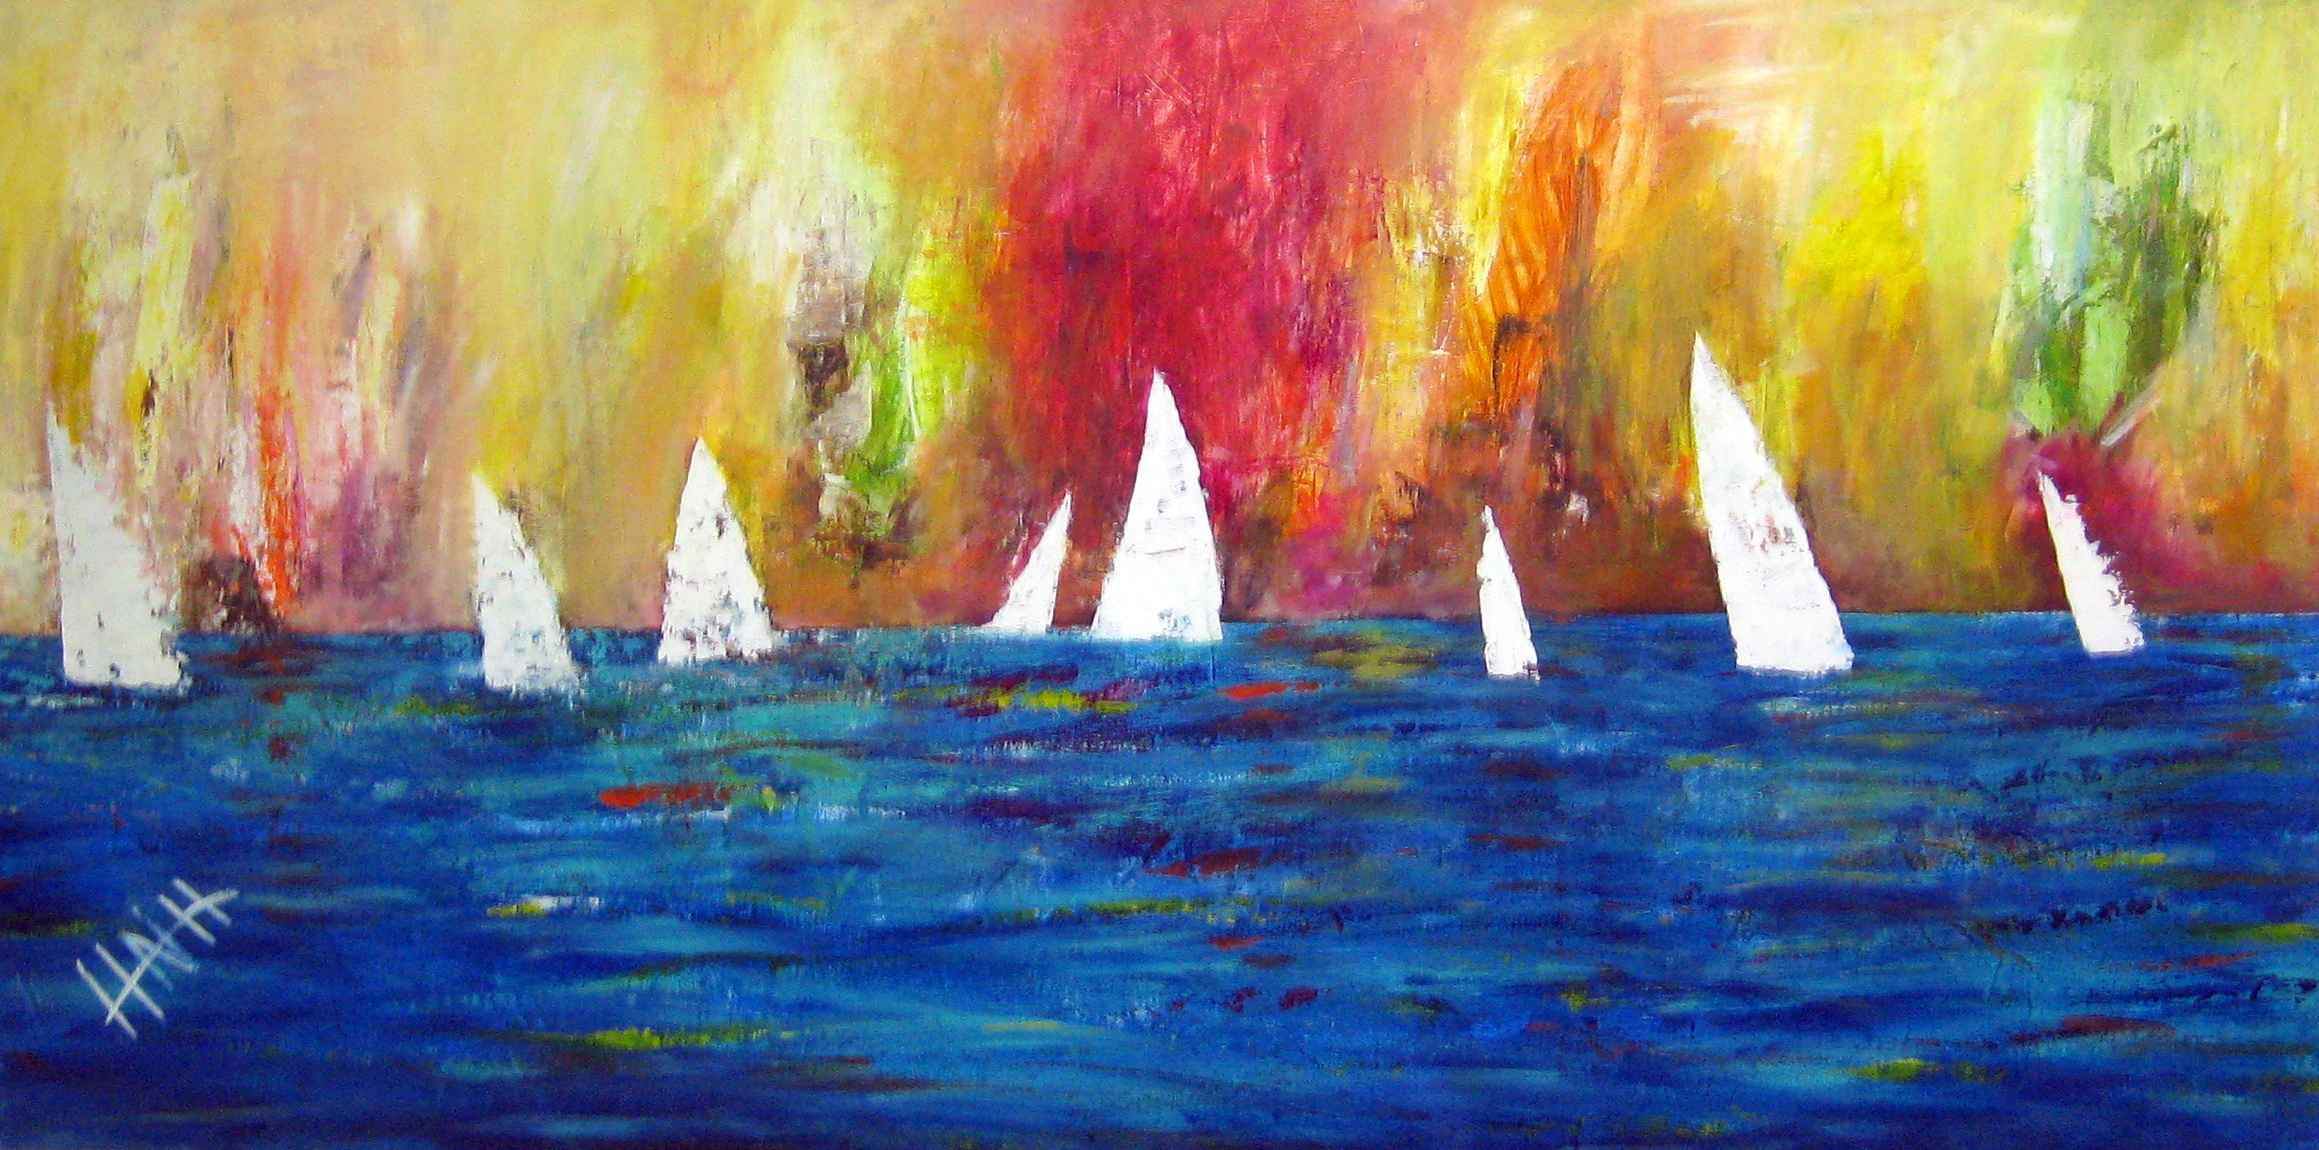 394 A Day Out Sailing by Mr Nicholas Hadeed - Masterpiece Online